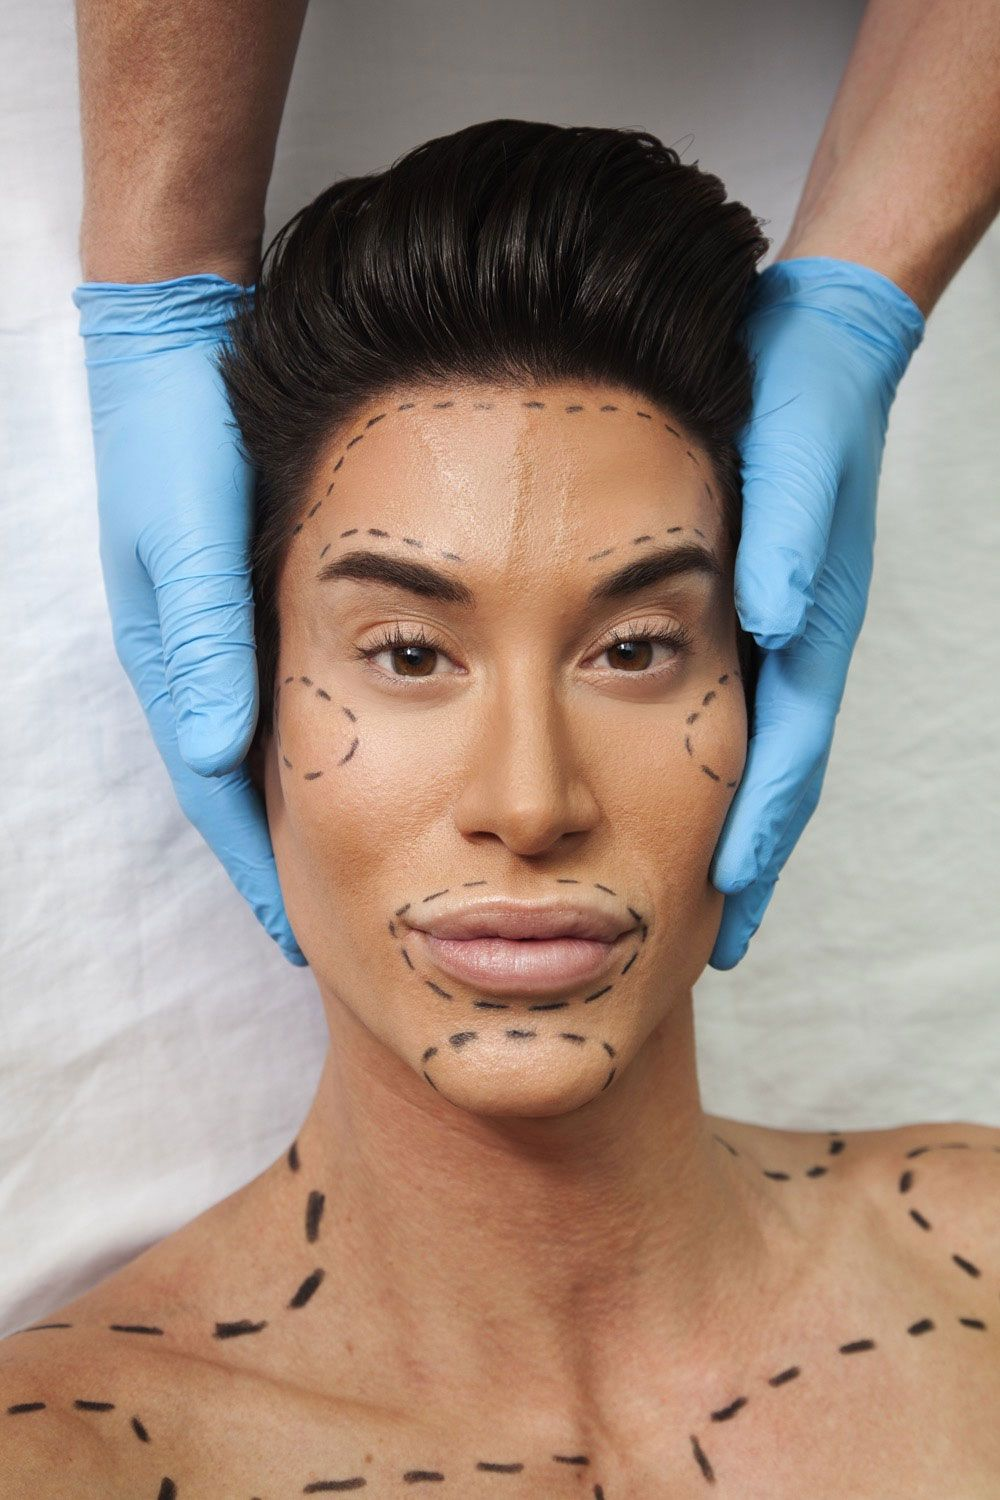 Human Ken Could Have Gone Blind Undergoing Cosmetic Surgery